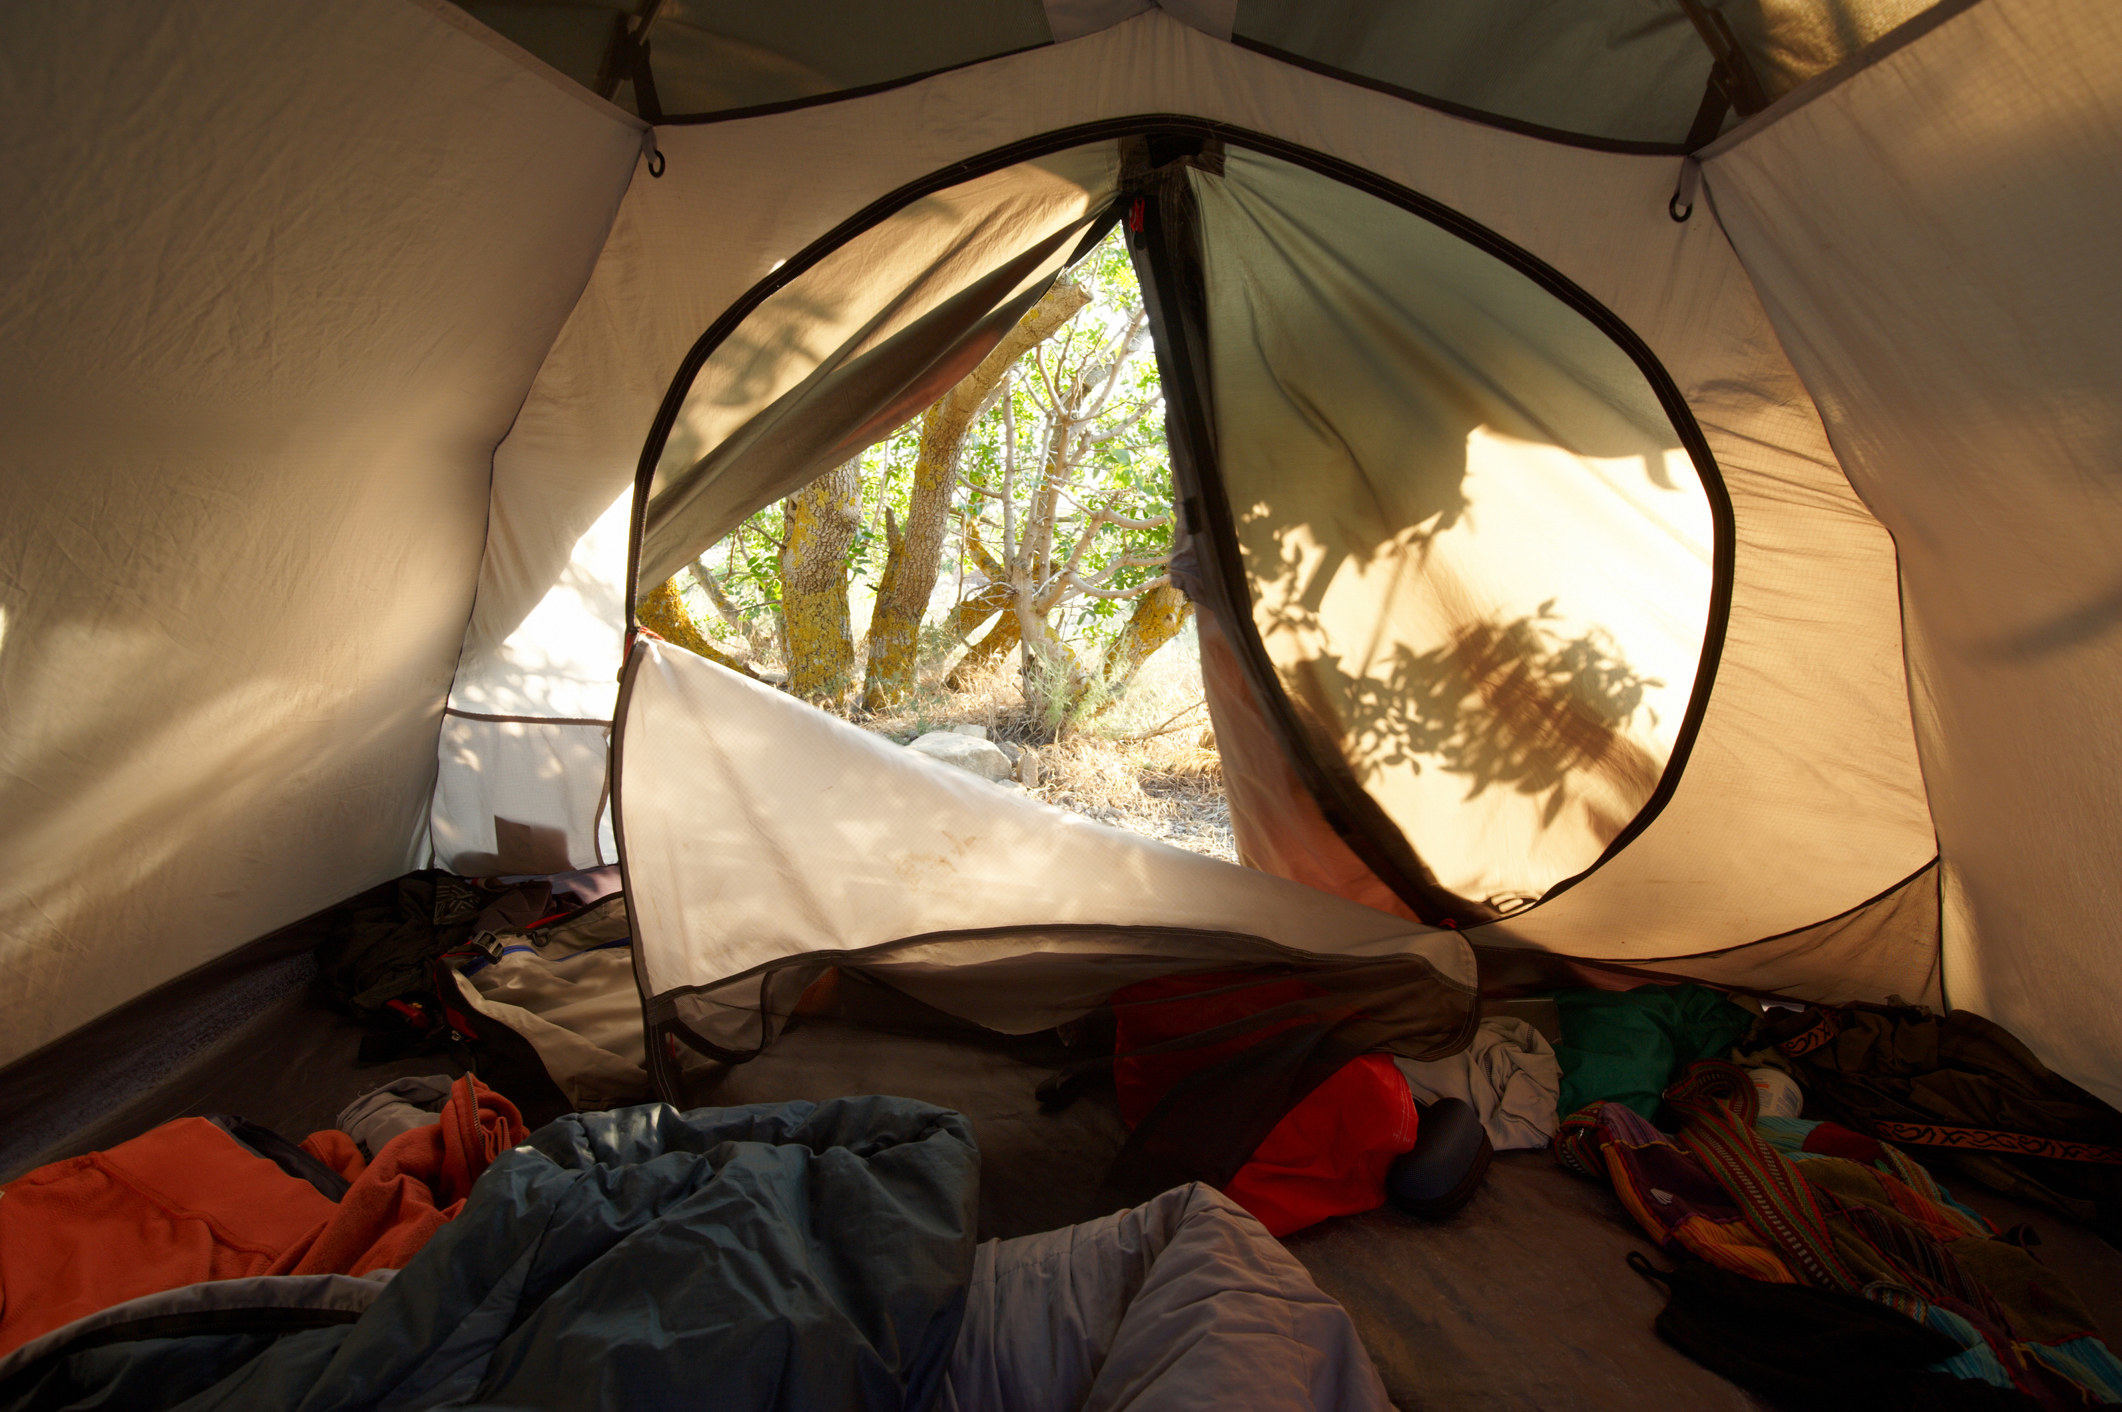 a view from inside a tent, with sleeping bags and clothes on the ground, looking out into the woods